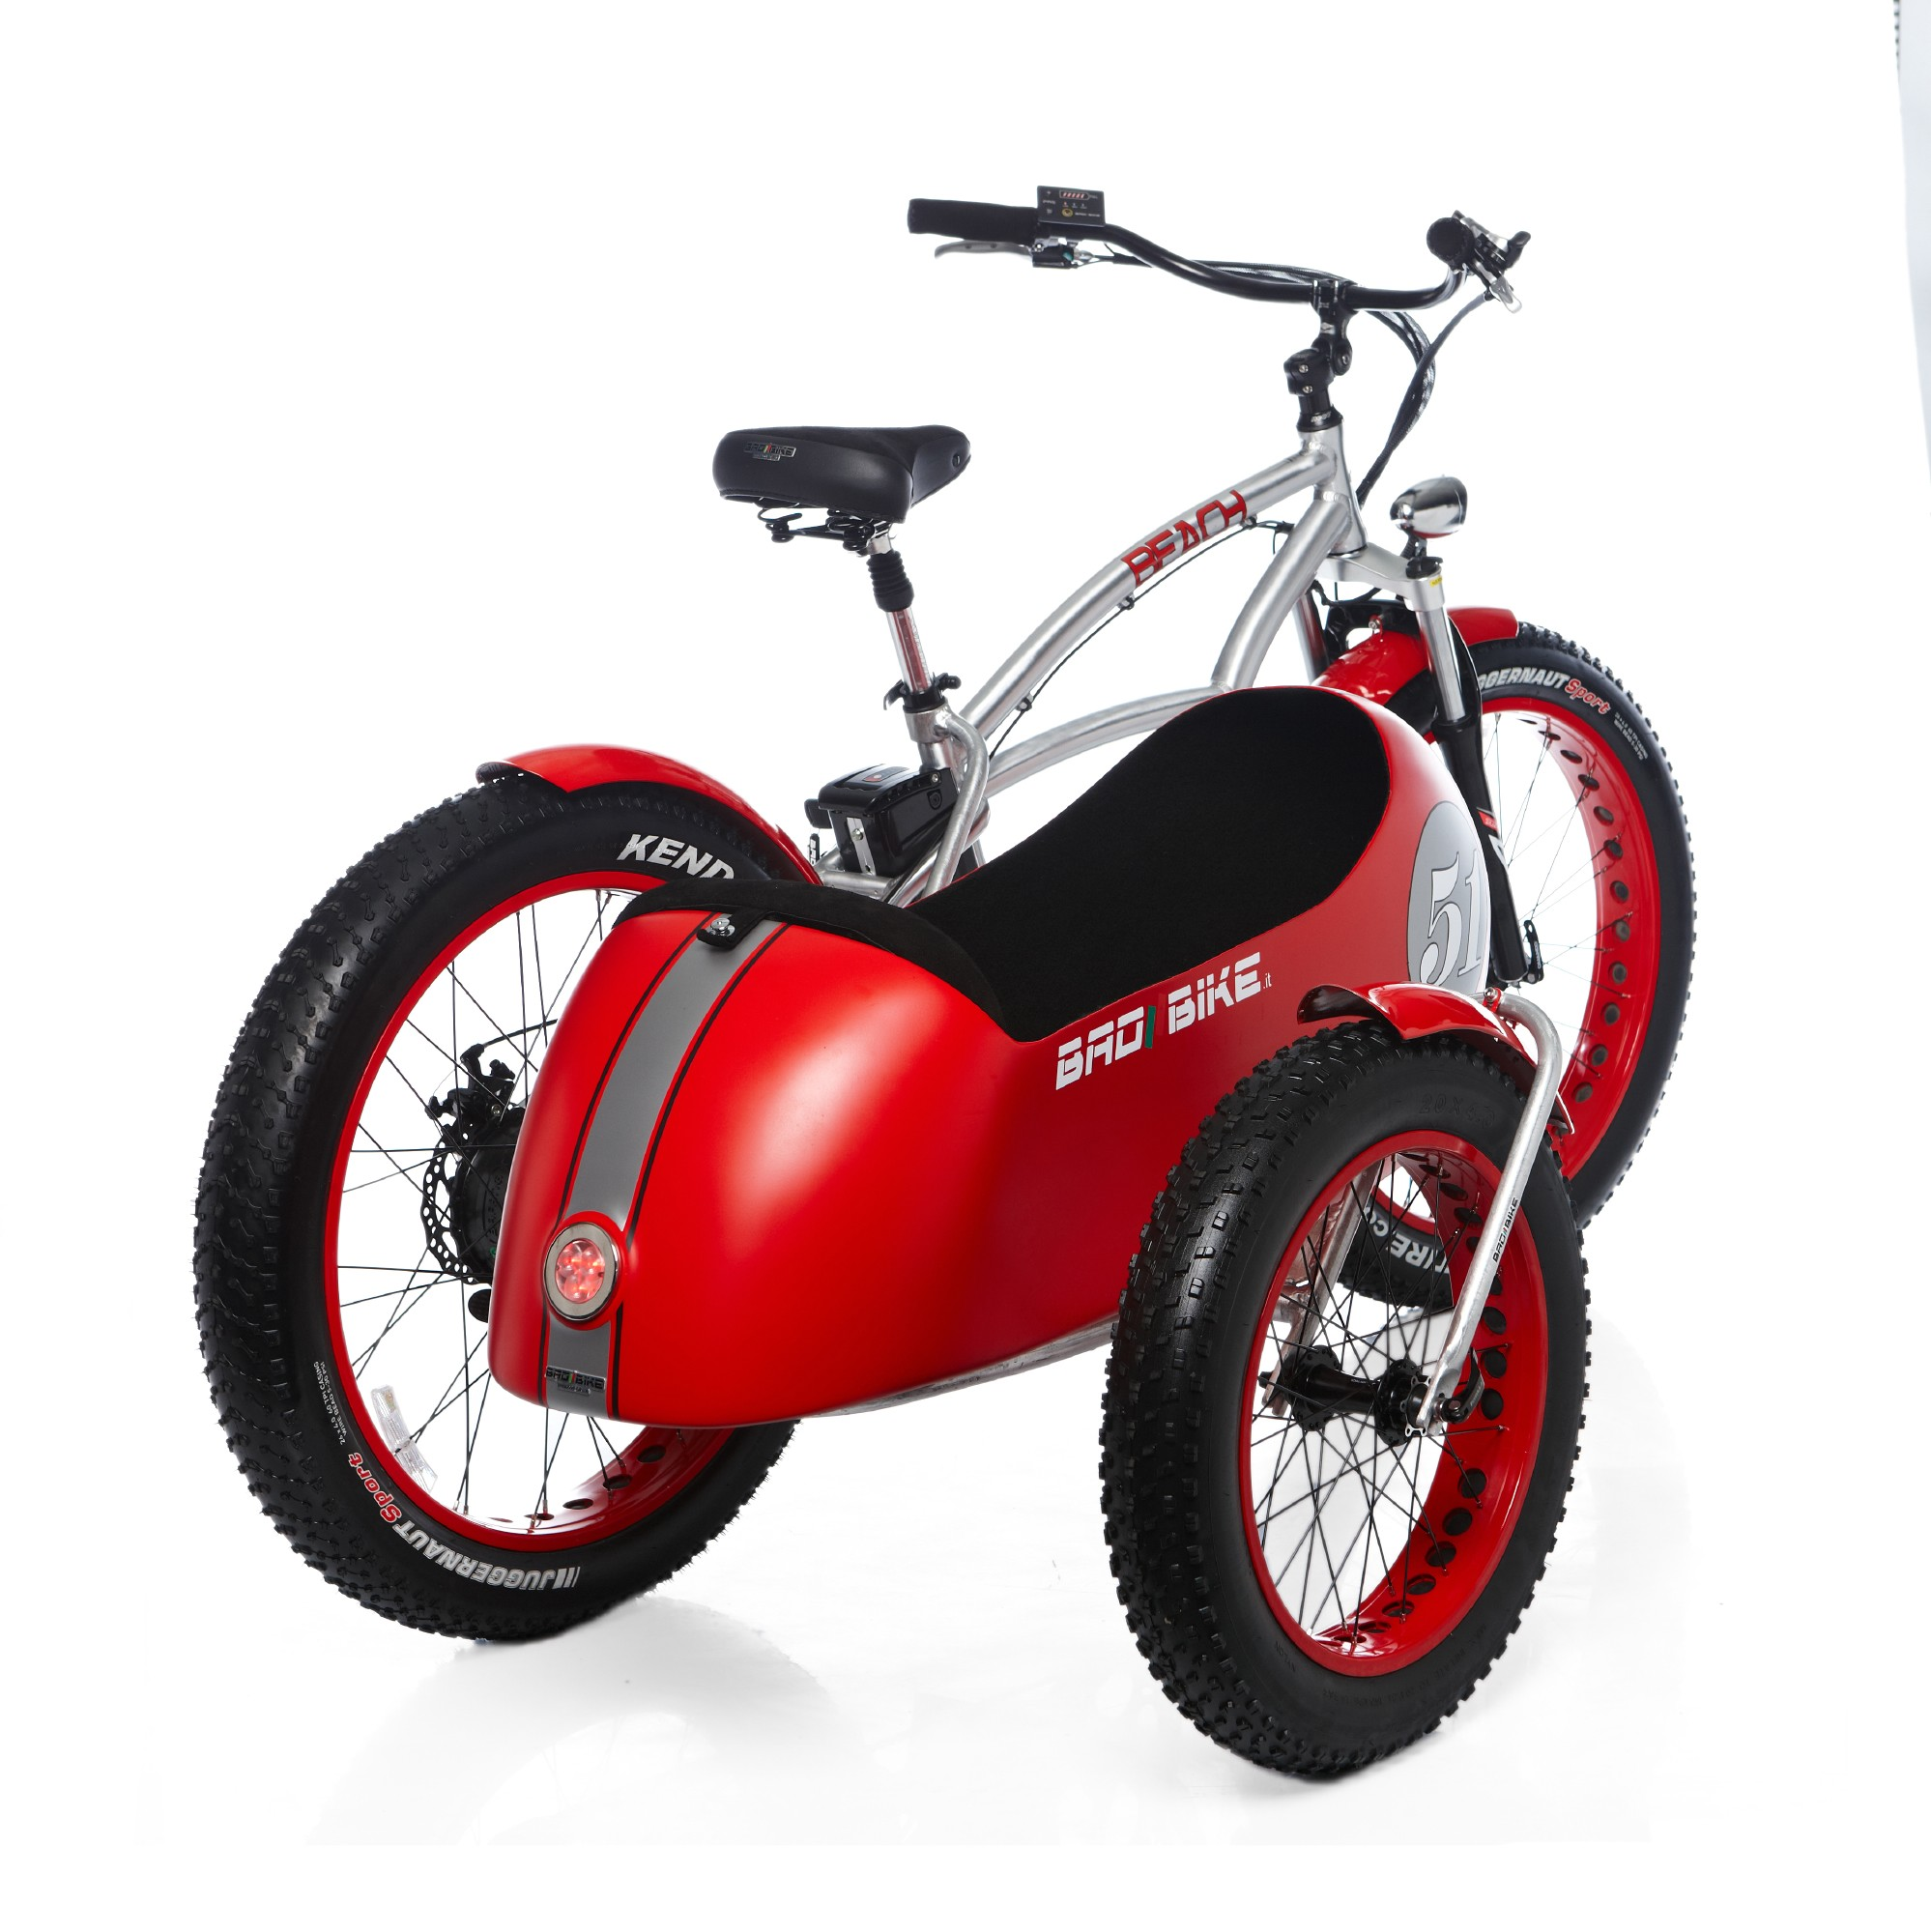 Bad Bike Beach Vintage Side Bad Bike Beach Vintage Fat The Electric Sidecar Bicycle